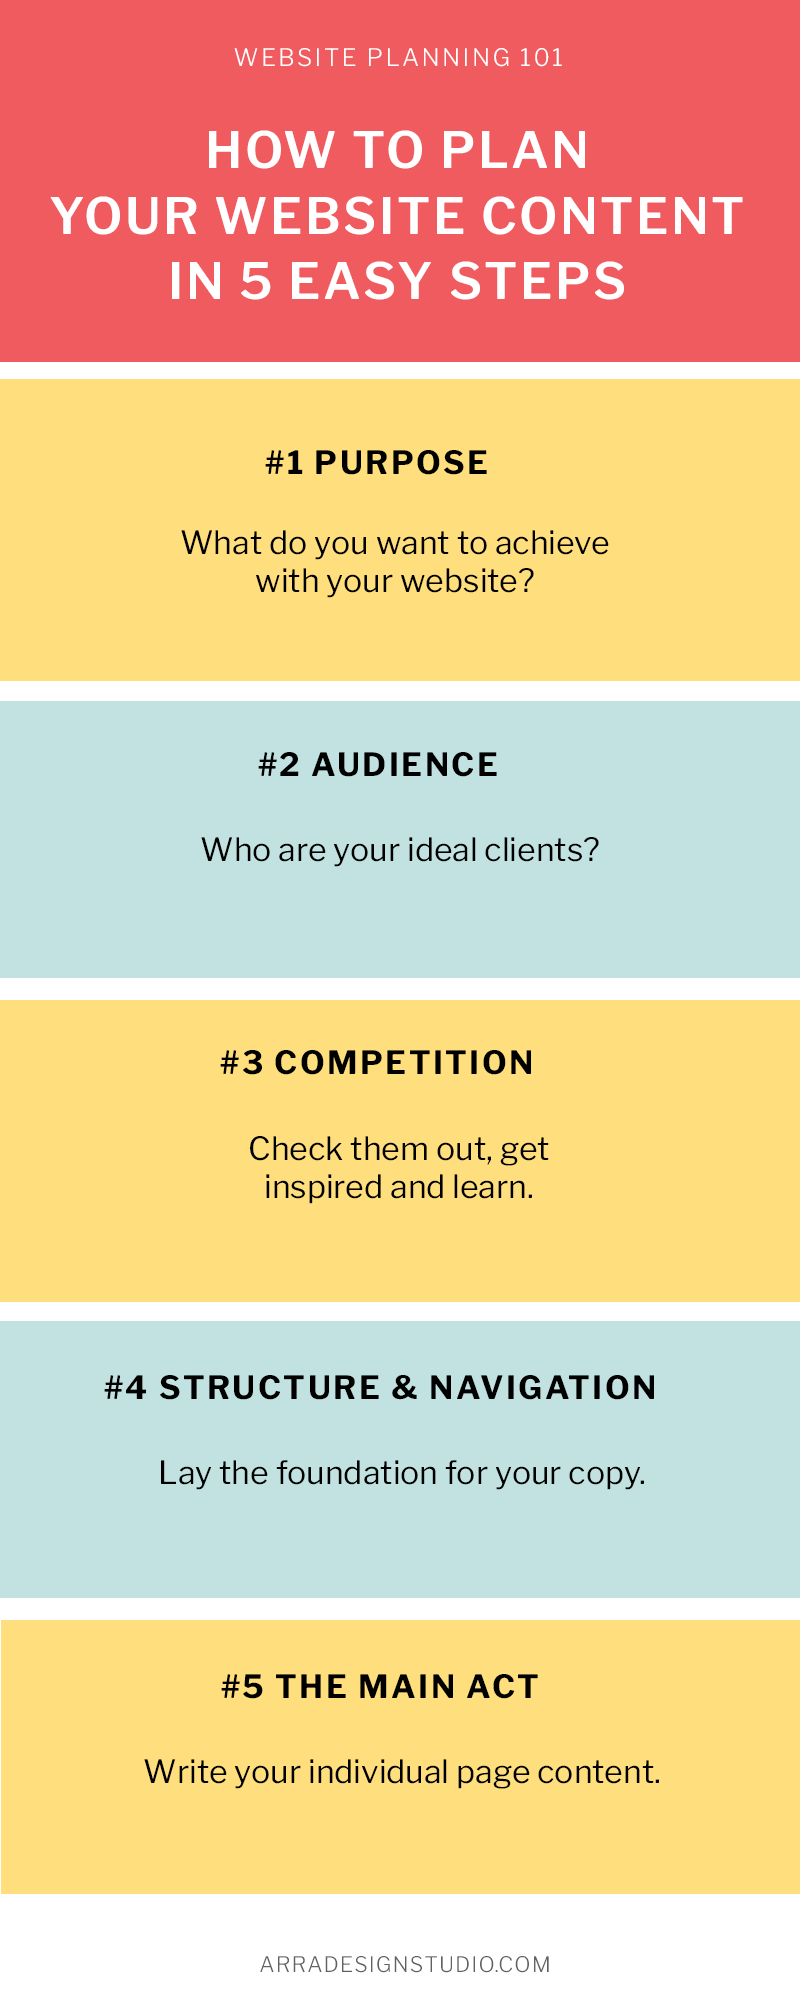 infogrgaphic listing the 5 steps of planning website content